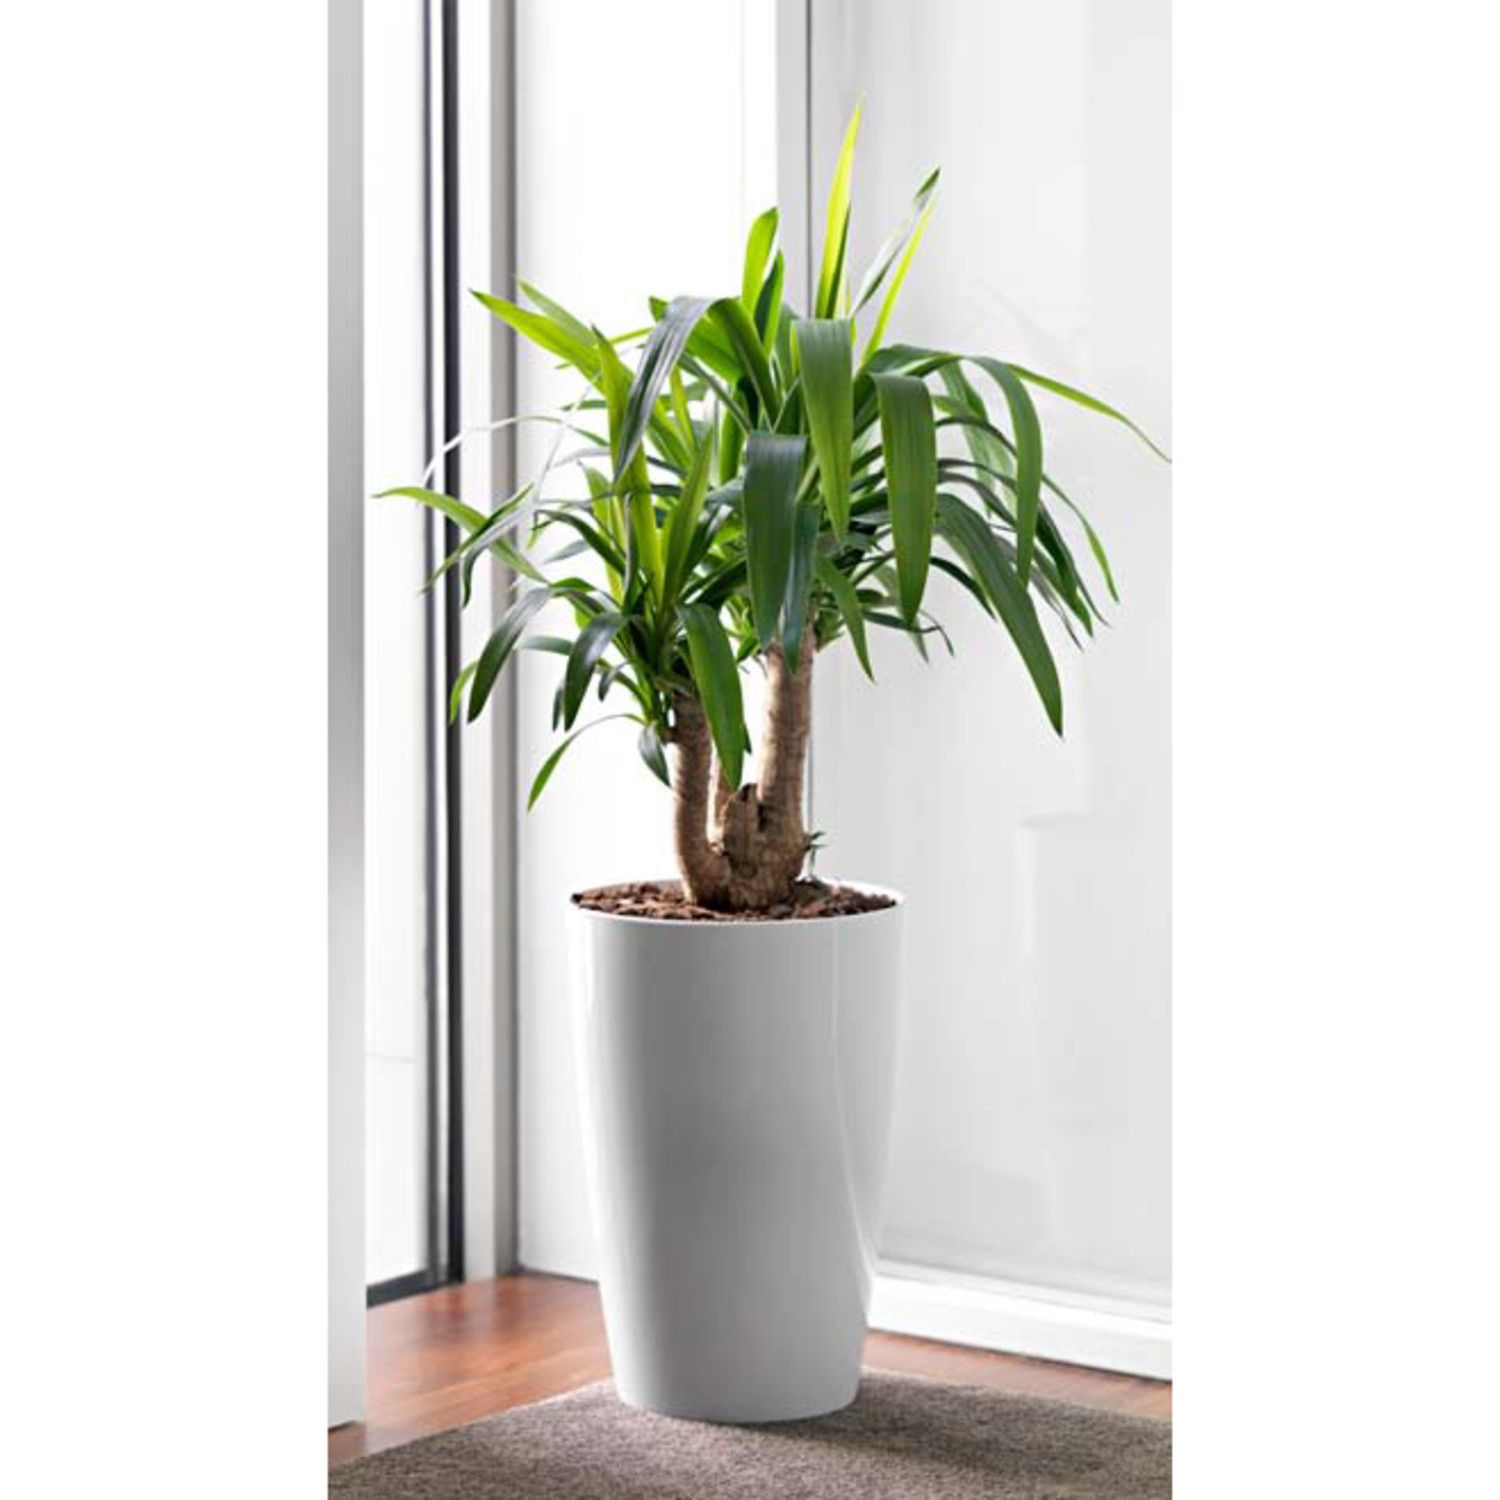 Office plants supplied and maintained by Plant Design